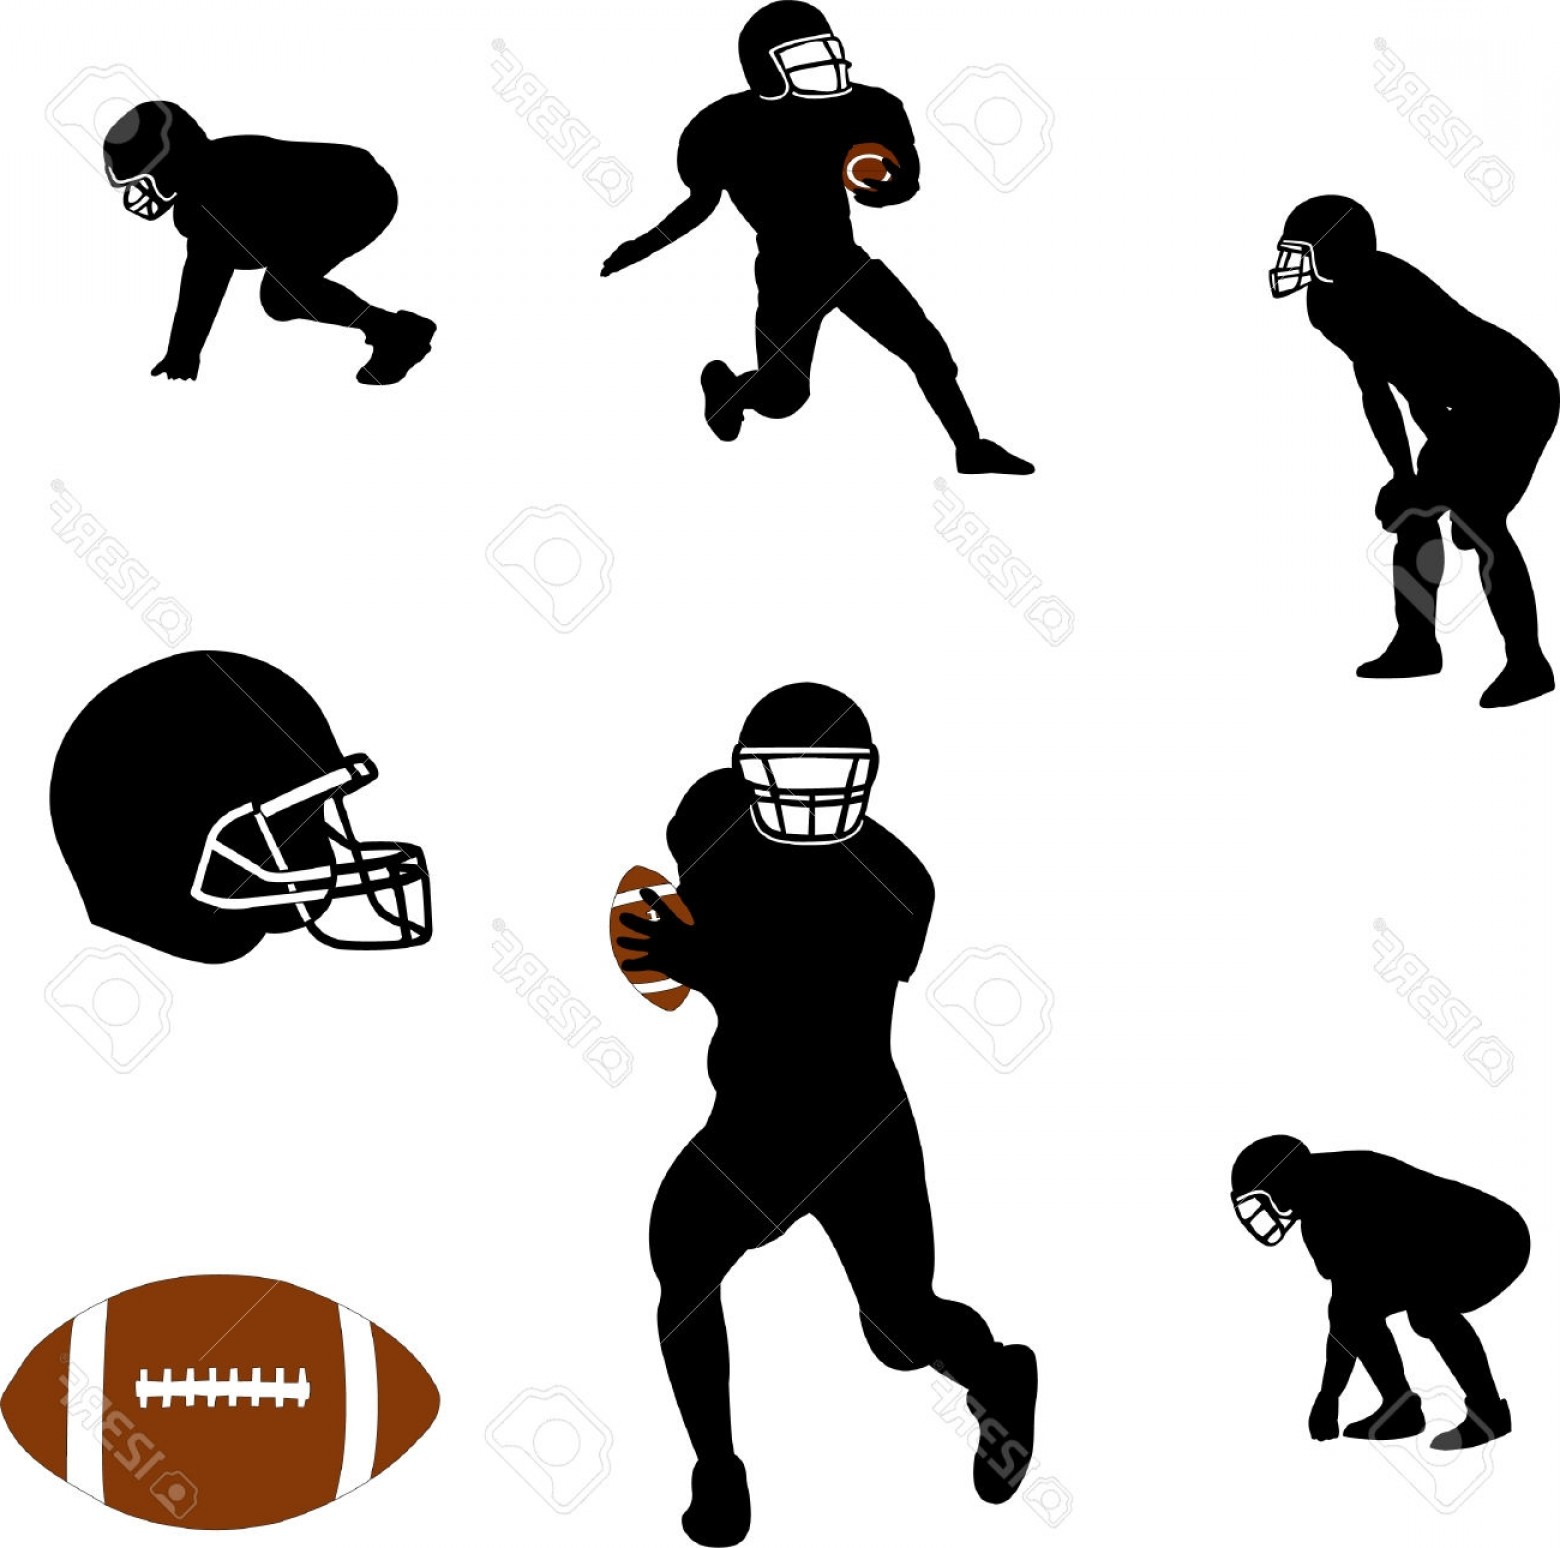 Excellent American Football Silhouette Vector Draw.